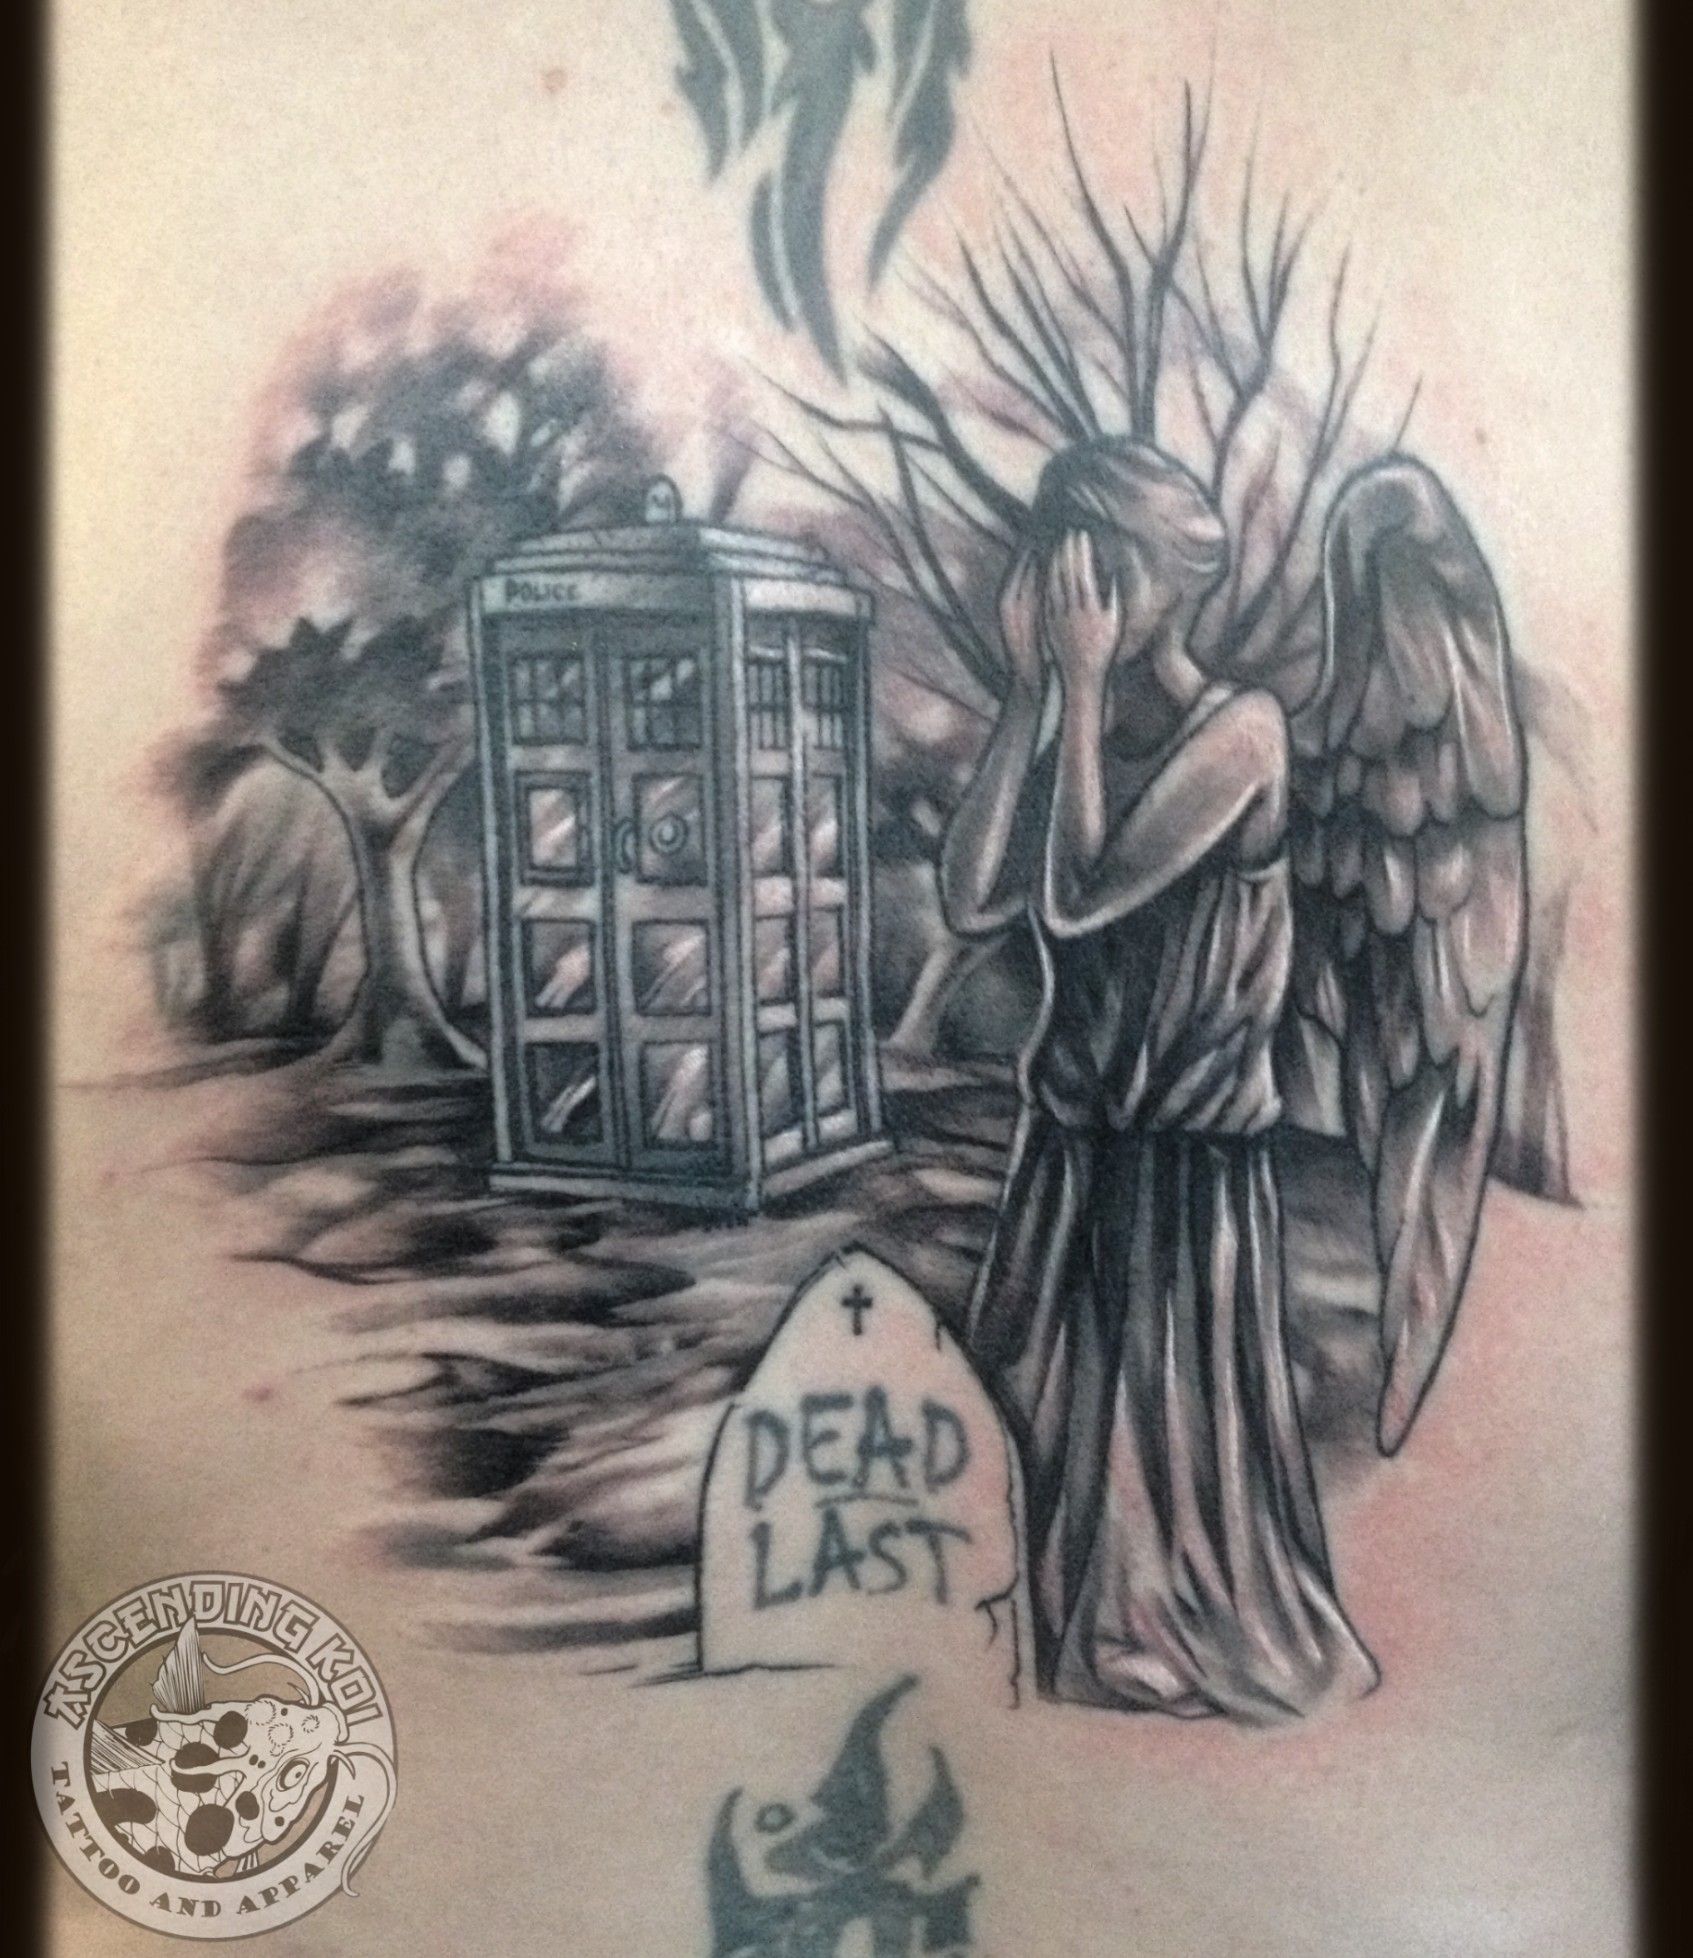 'Doctor Who' back piece by Trevor Jameus, featuring a Weeping Angel and an